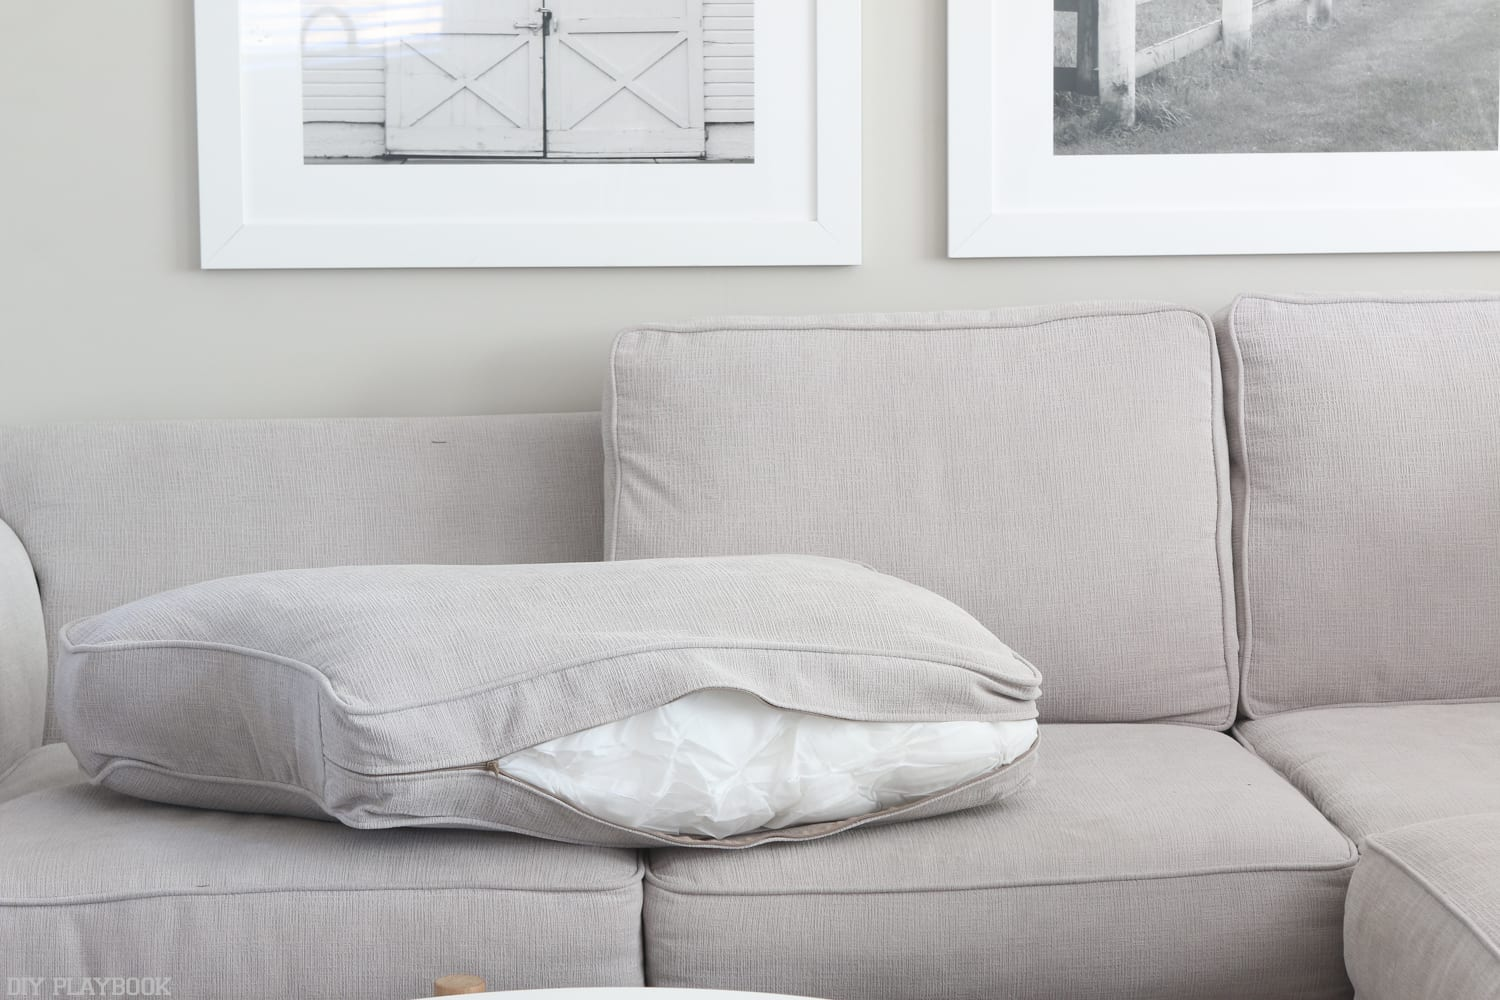 How To Clean Couch Cushions In Four Easy Steps